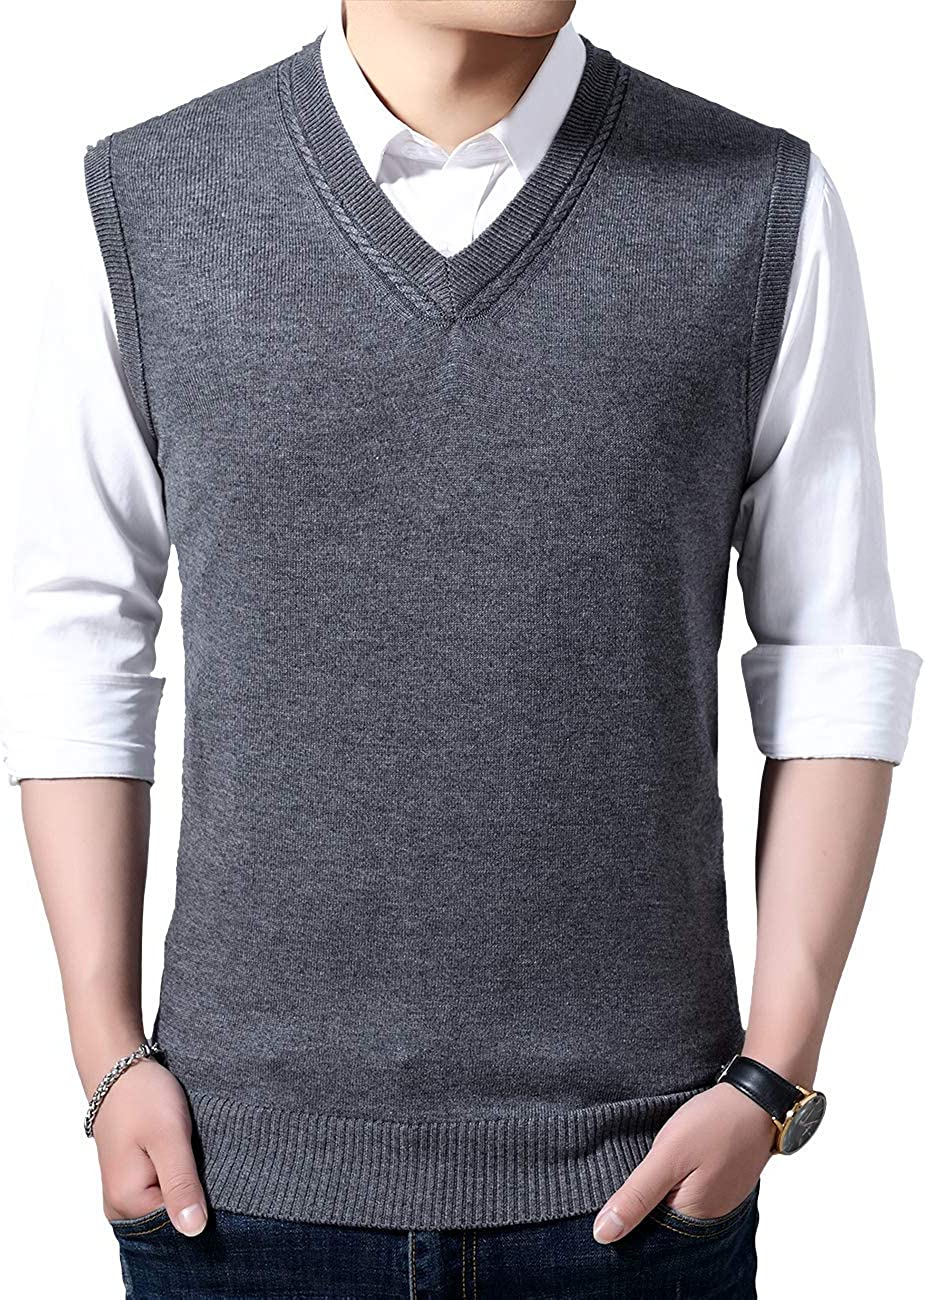 Moren Mens Winter V-Neck Sleeveless Vest Classic Business Gentleman Knitwear Knitted Waistcoat Sweater Cardigans Solid Color Tank Tops